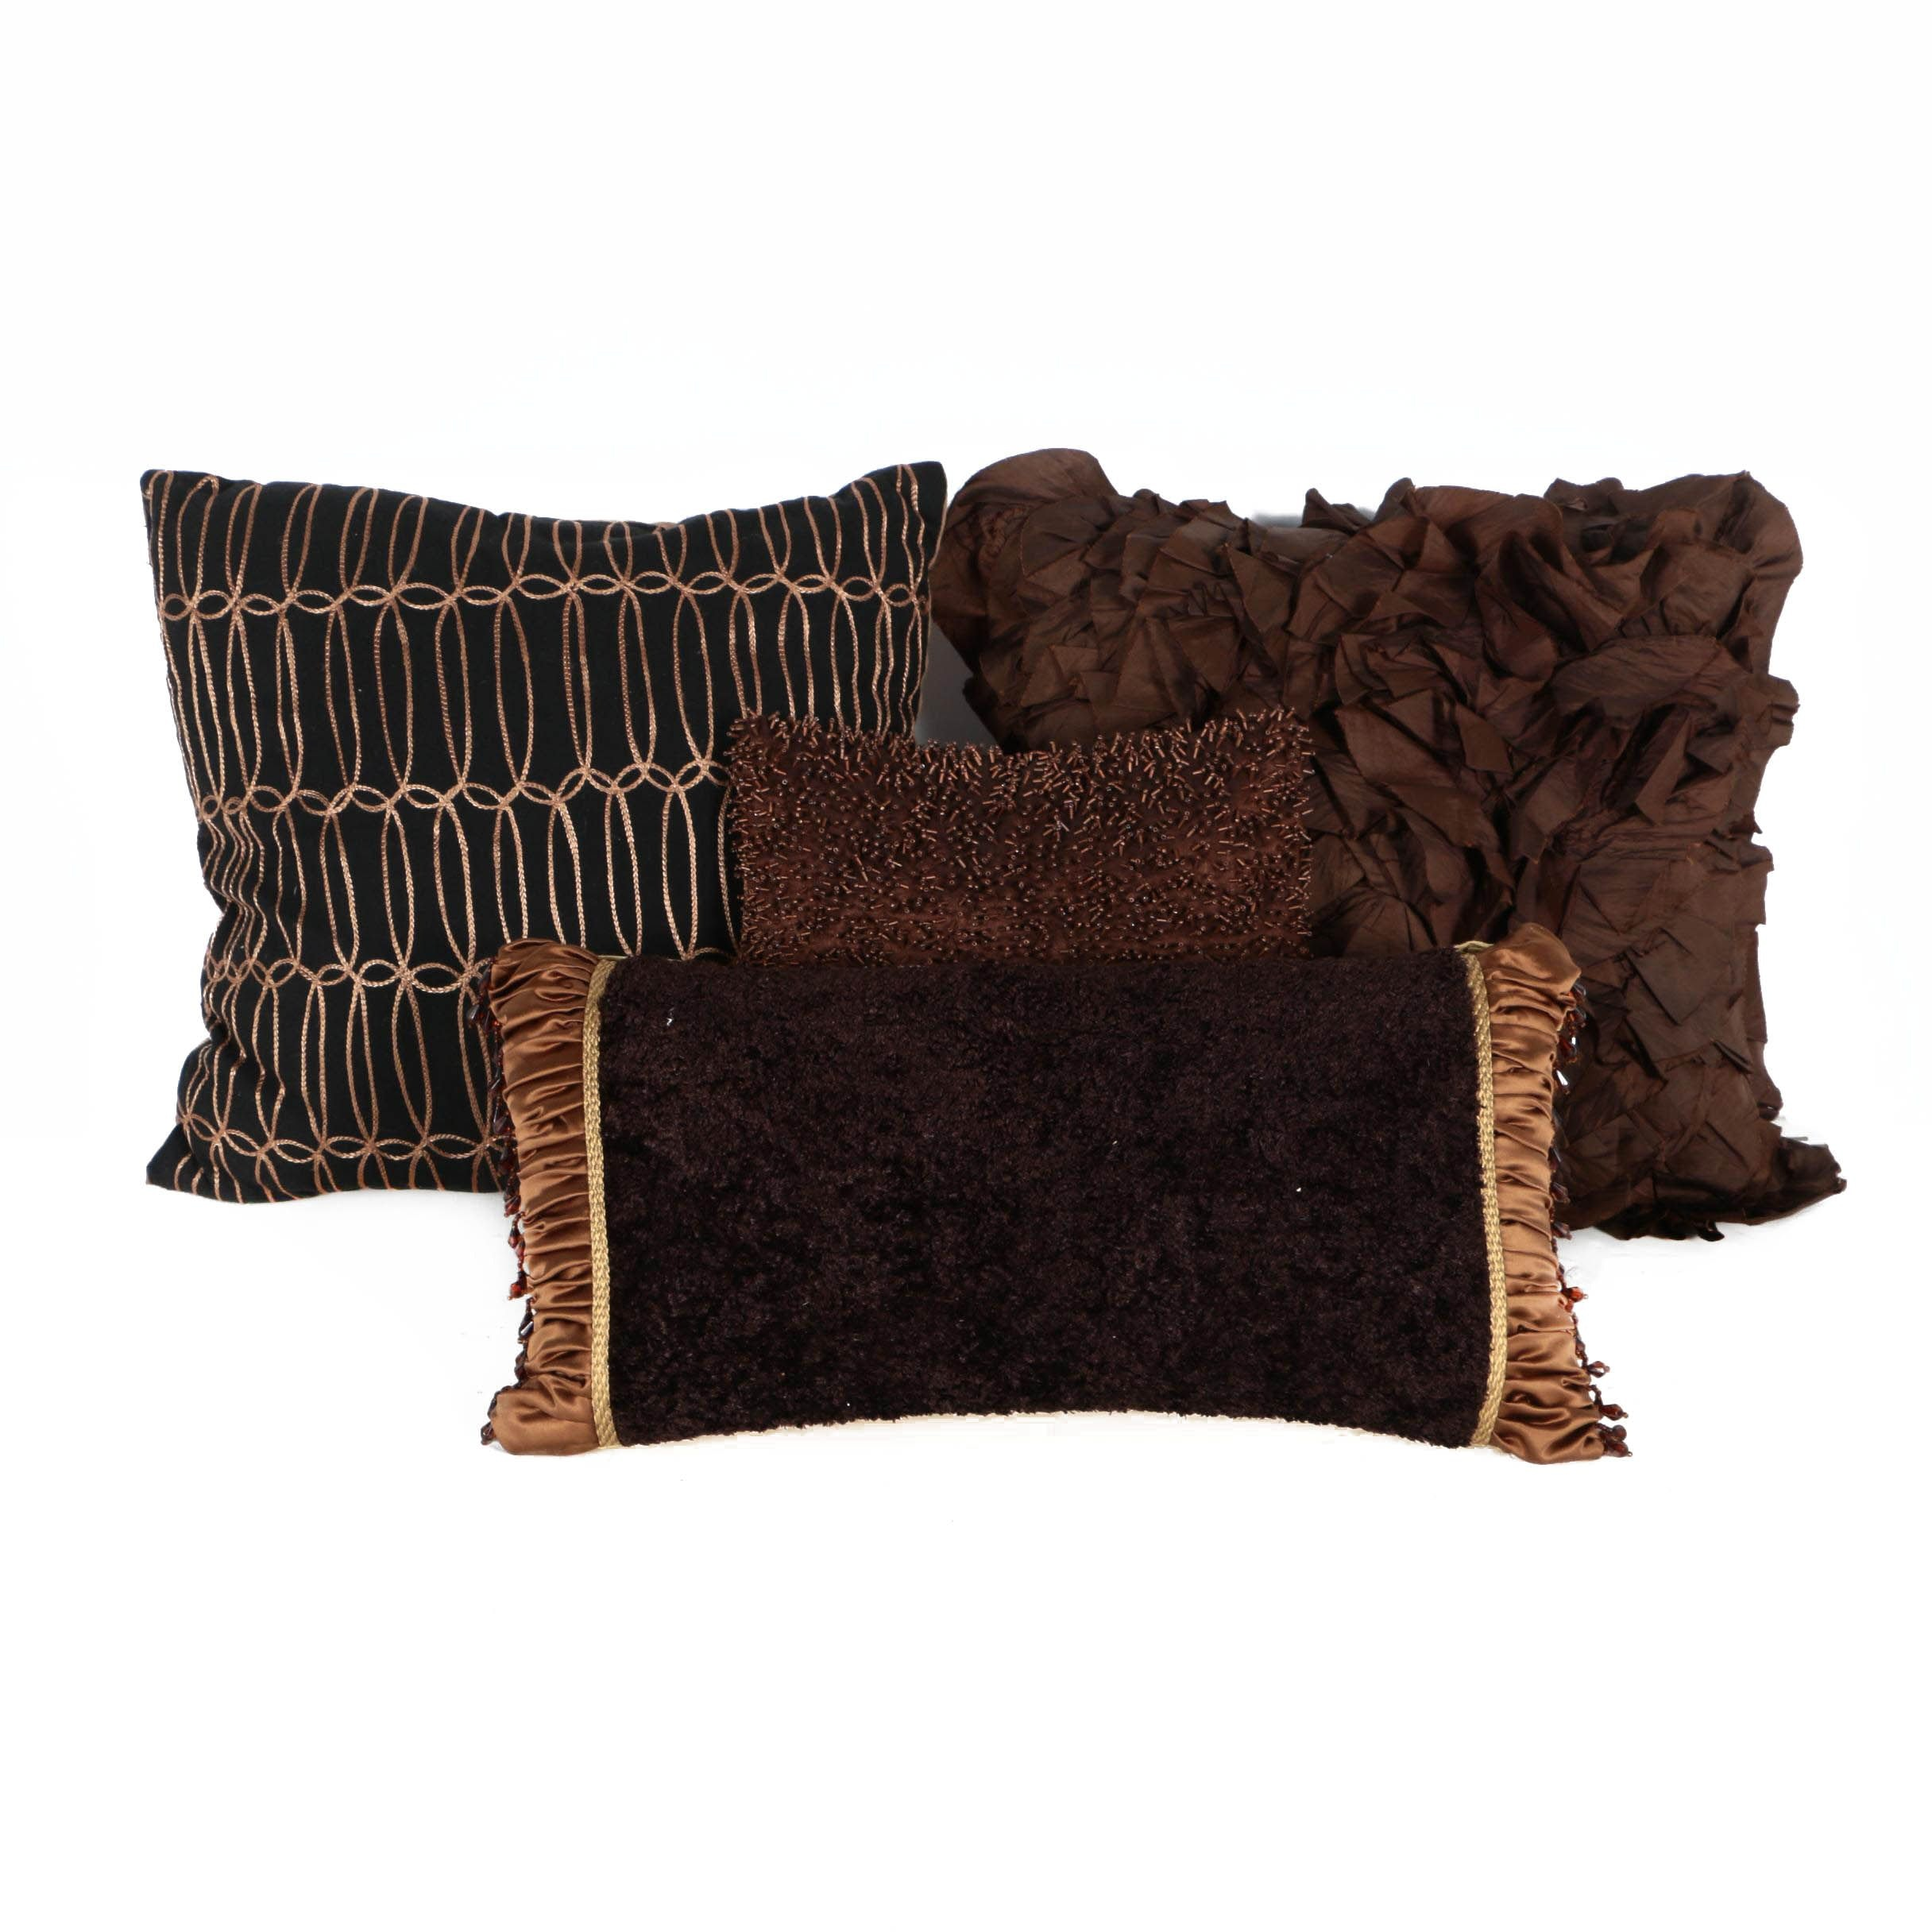 Collection of Four Decorative Throw Pillows